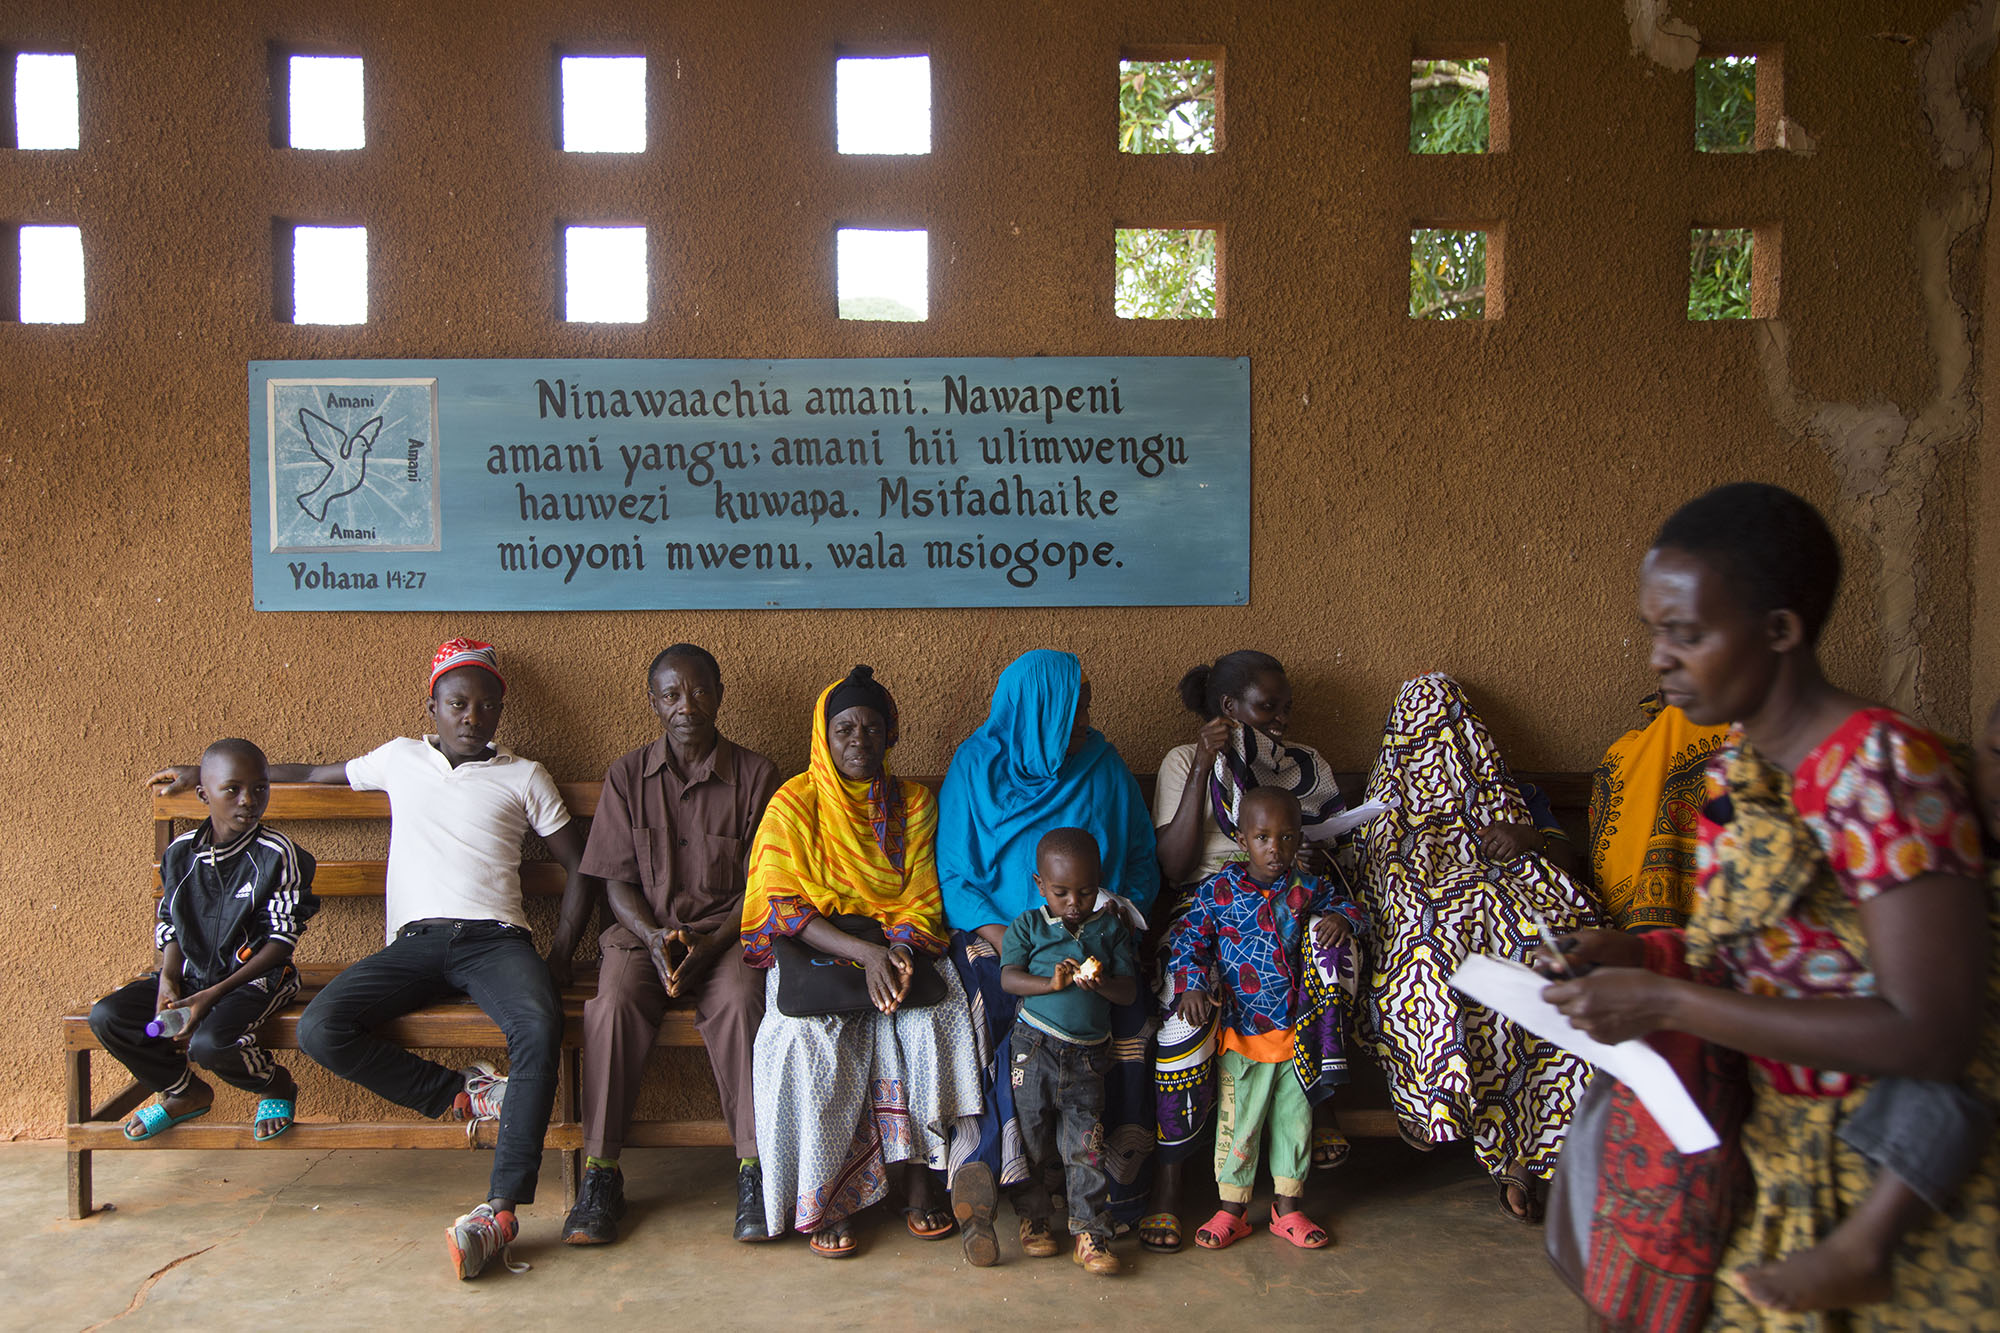 Patients wait in line to be registered at Kigoma Baptist Hospital in Tanzania. Because of the volume of need, the hospital may occasionally run out of room or resources. But International Mission Board medical missionary Larry Pepper says that doesn't last long -- churches always step up to fill in the gaps. IMB photo